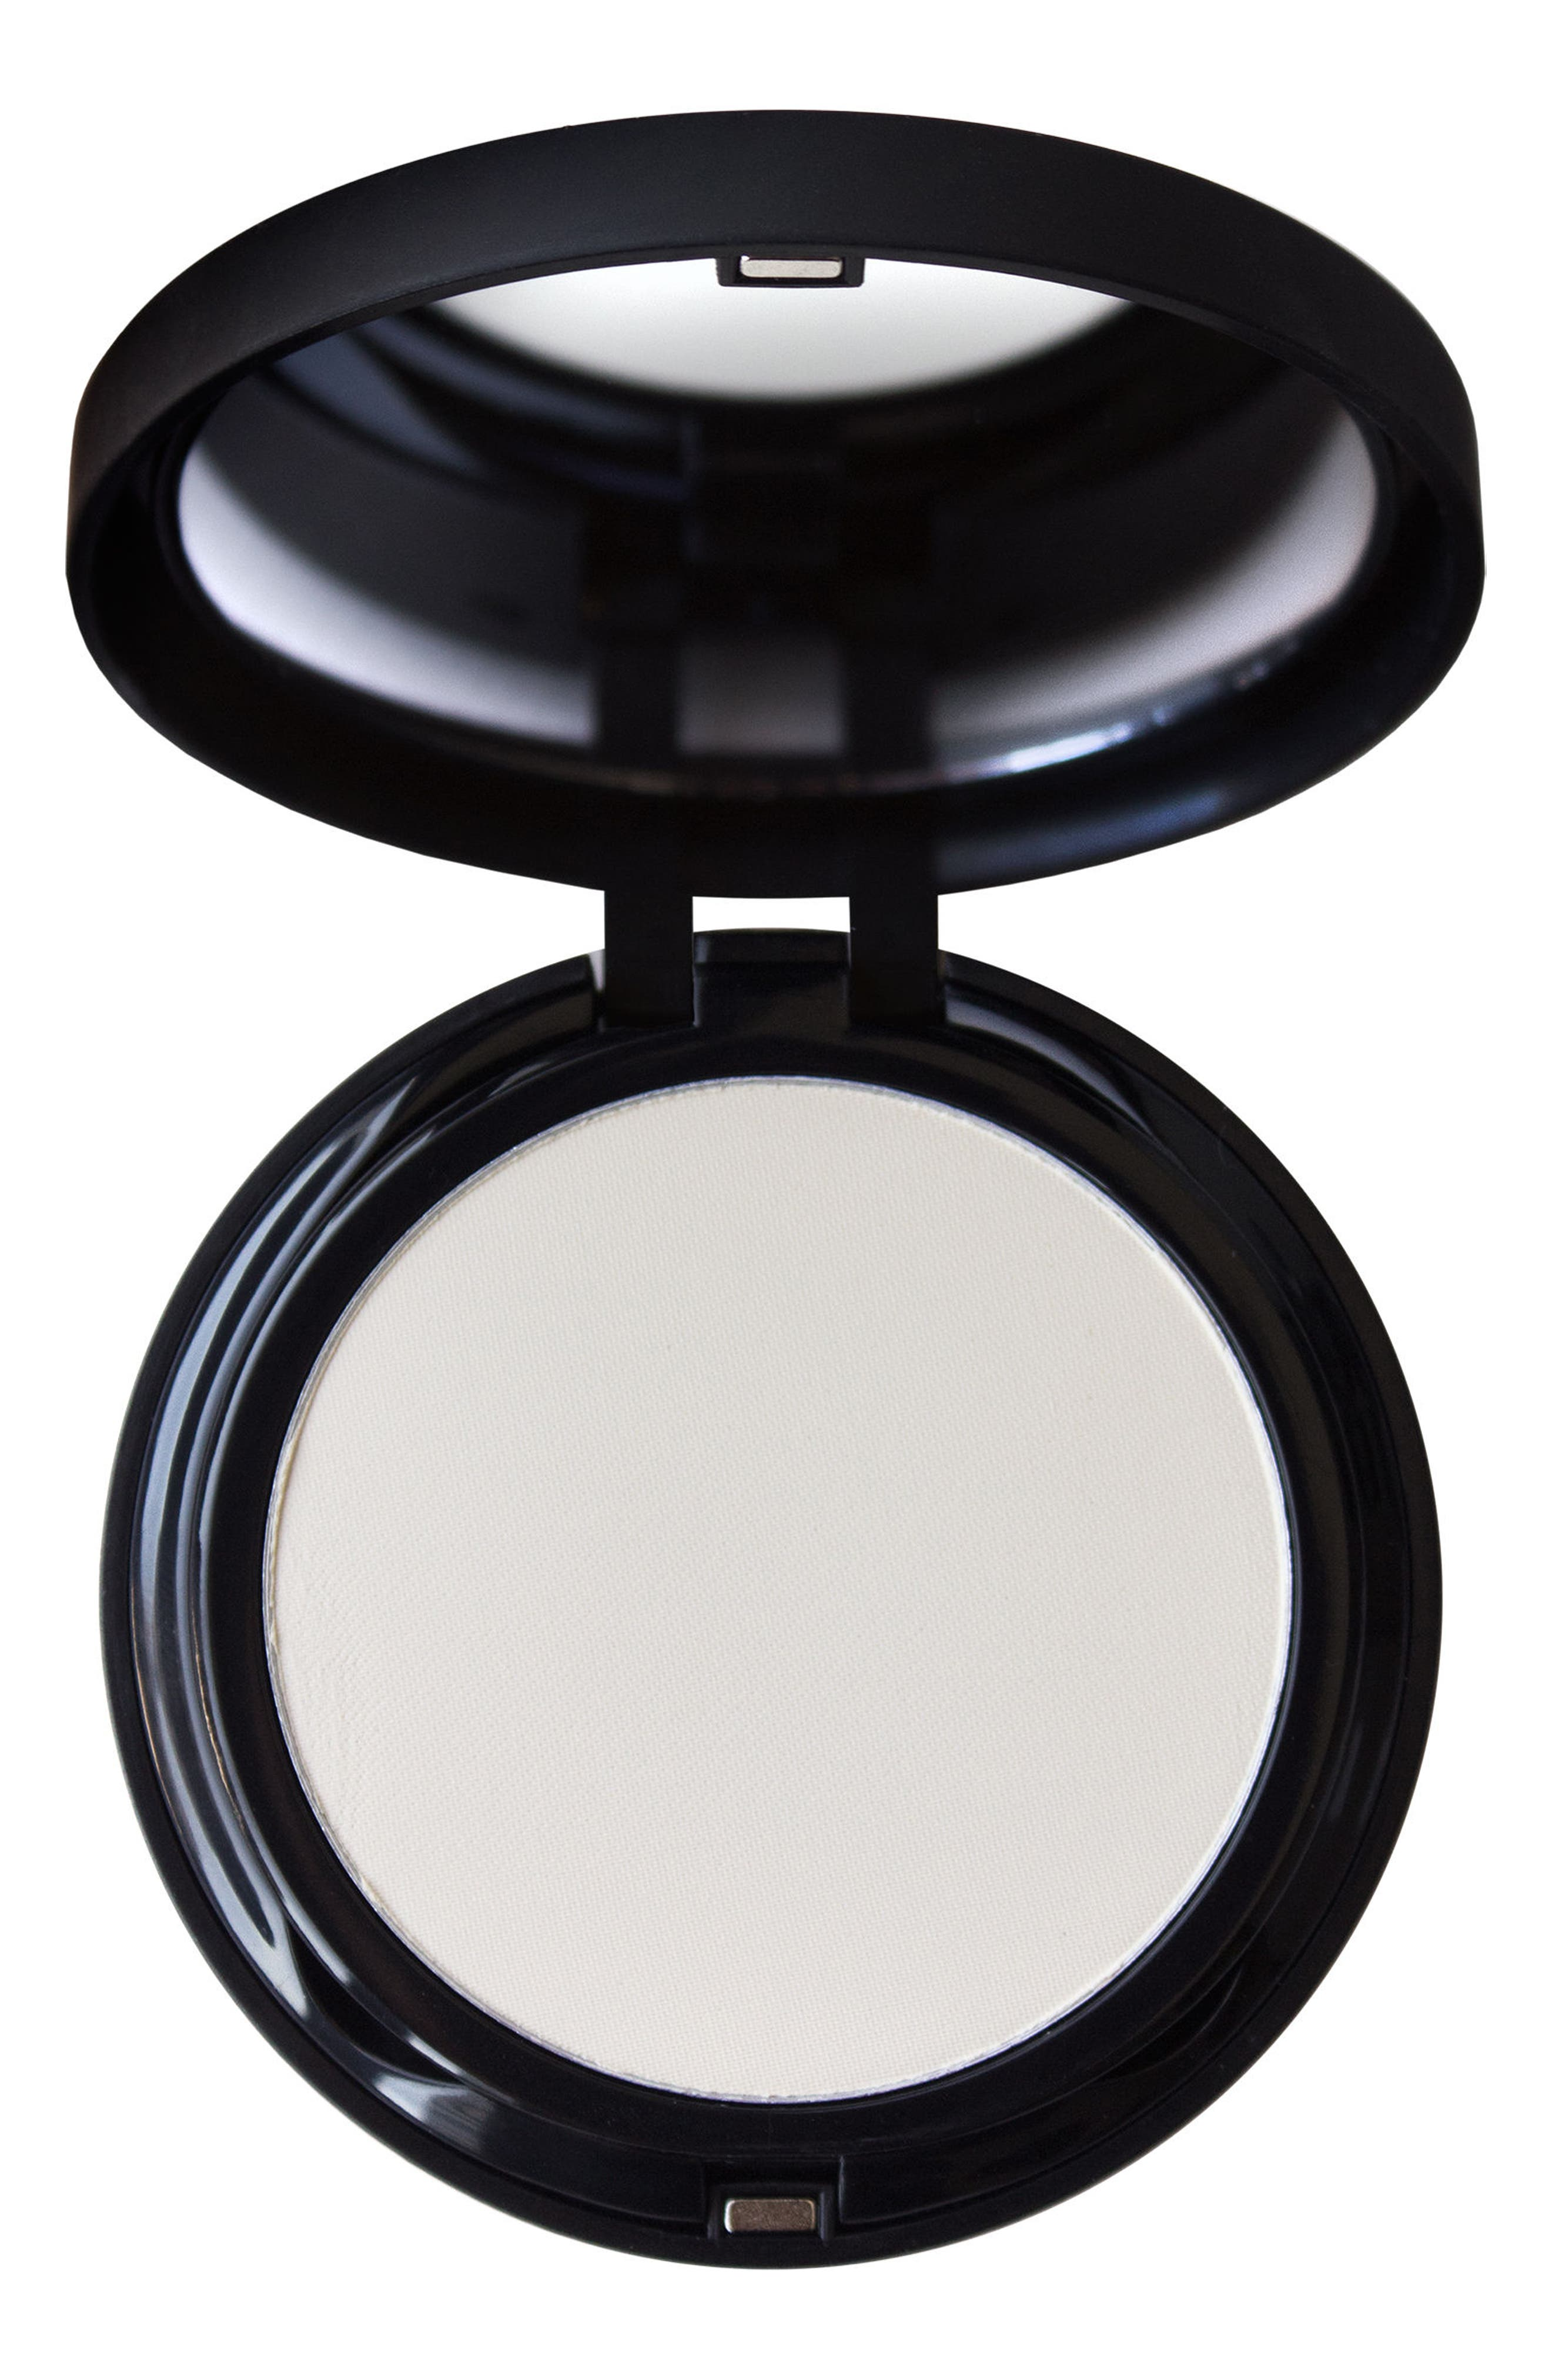 Alternate Image 1 Selected - LORAC PRO Blurring Translucent Pressed Powder